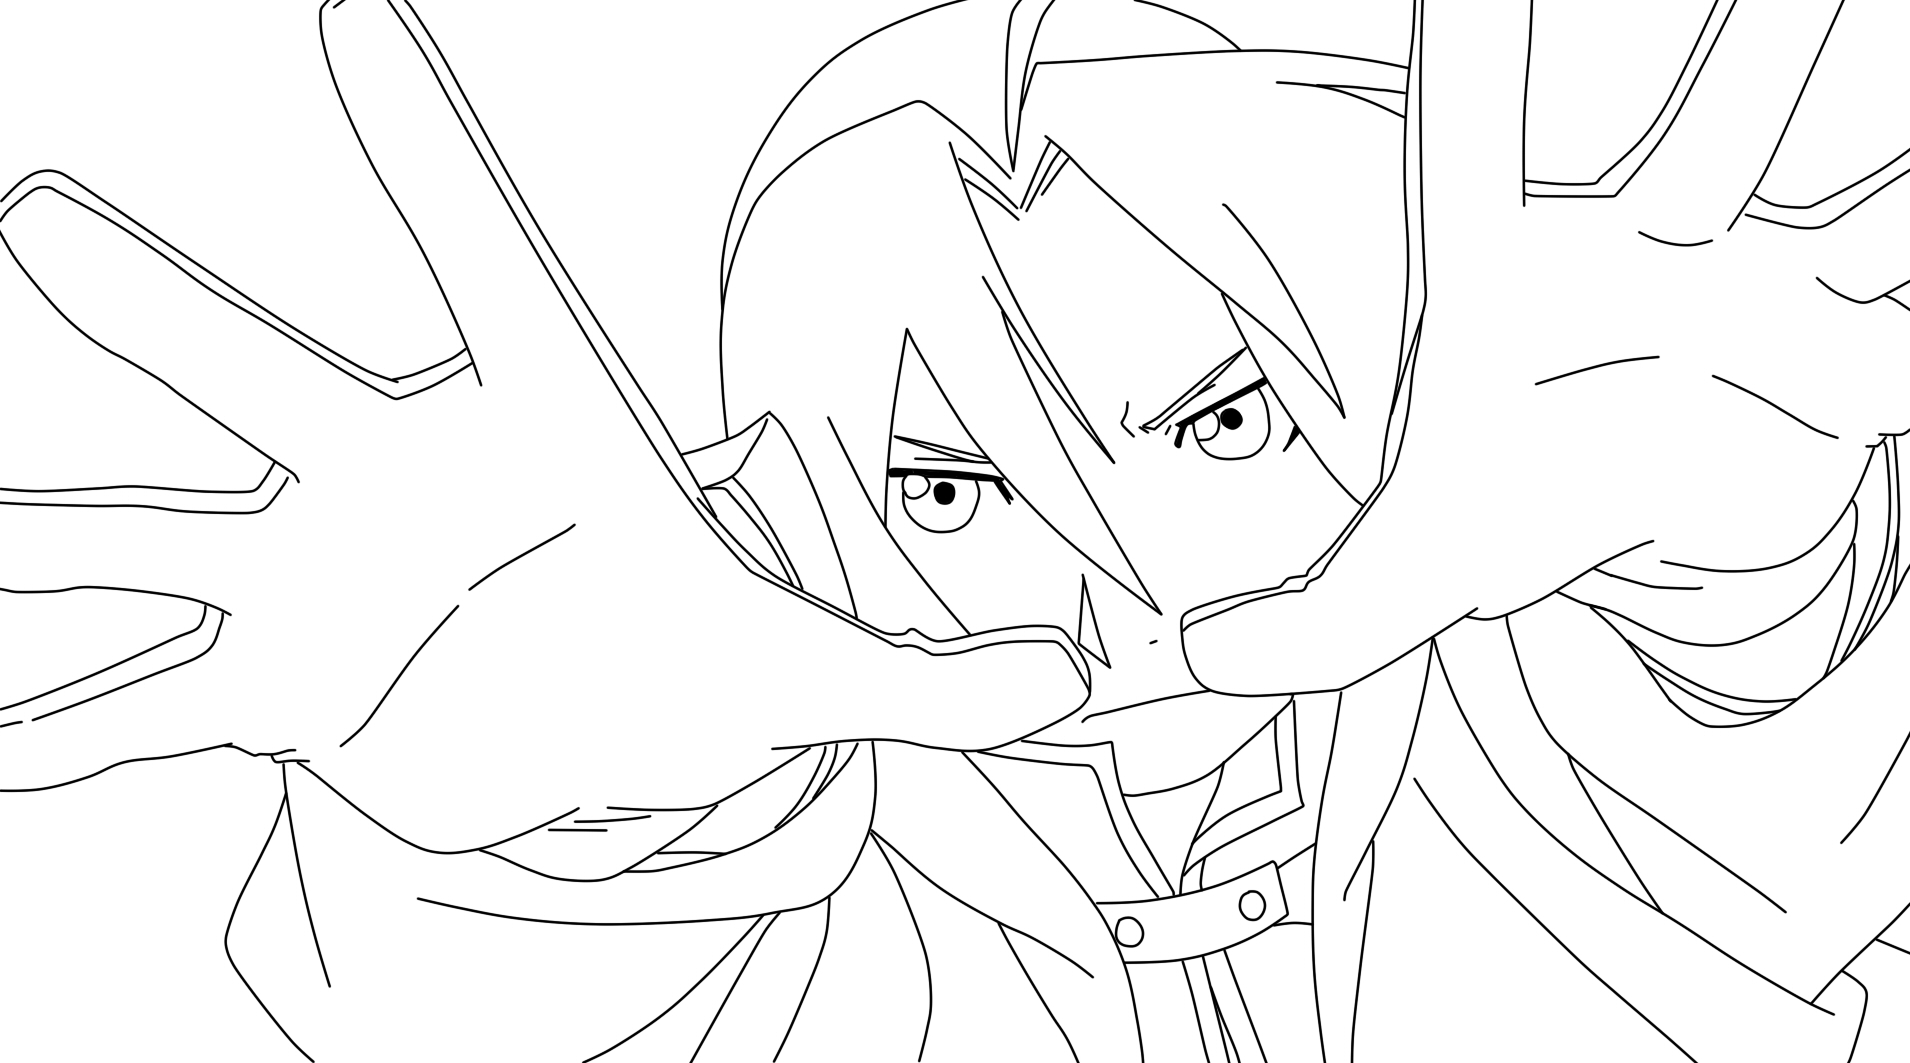 Line Art Anime : Lineart edward elric by fresh anime on deviantart